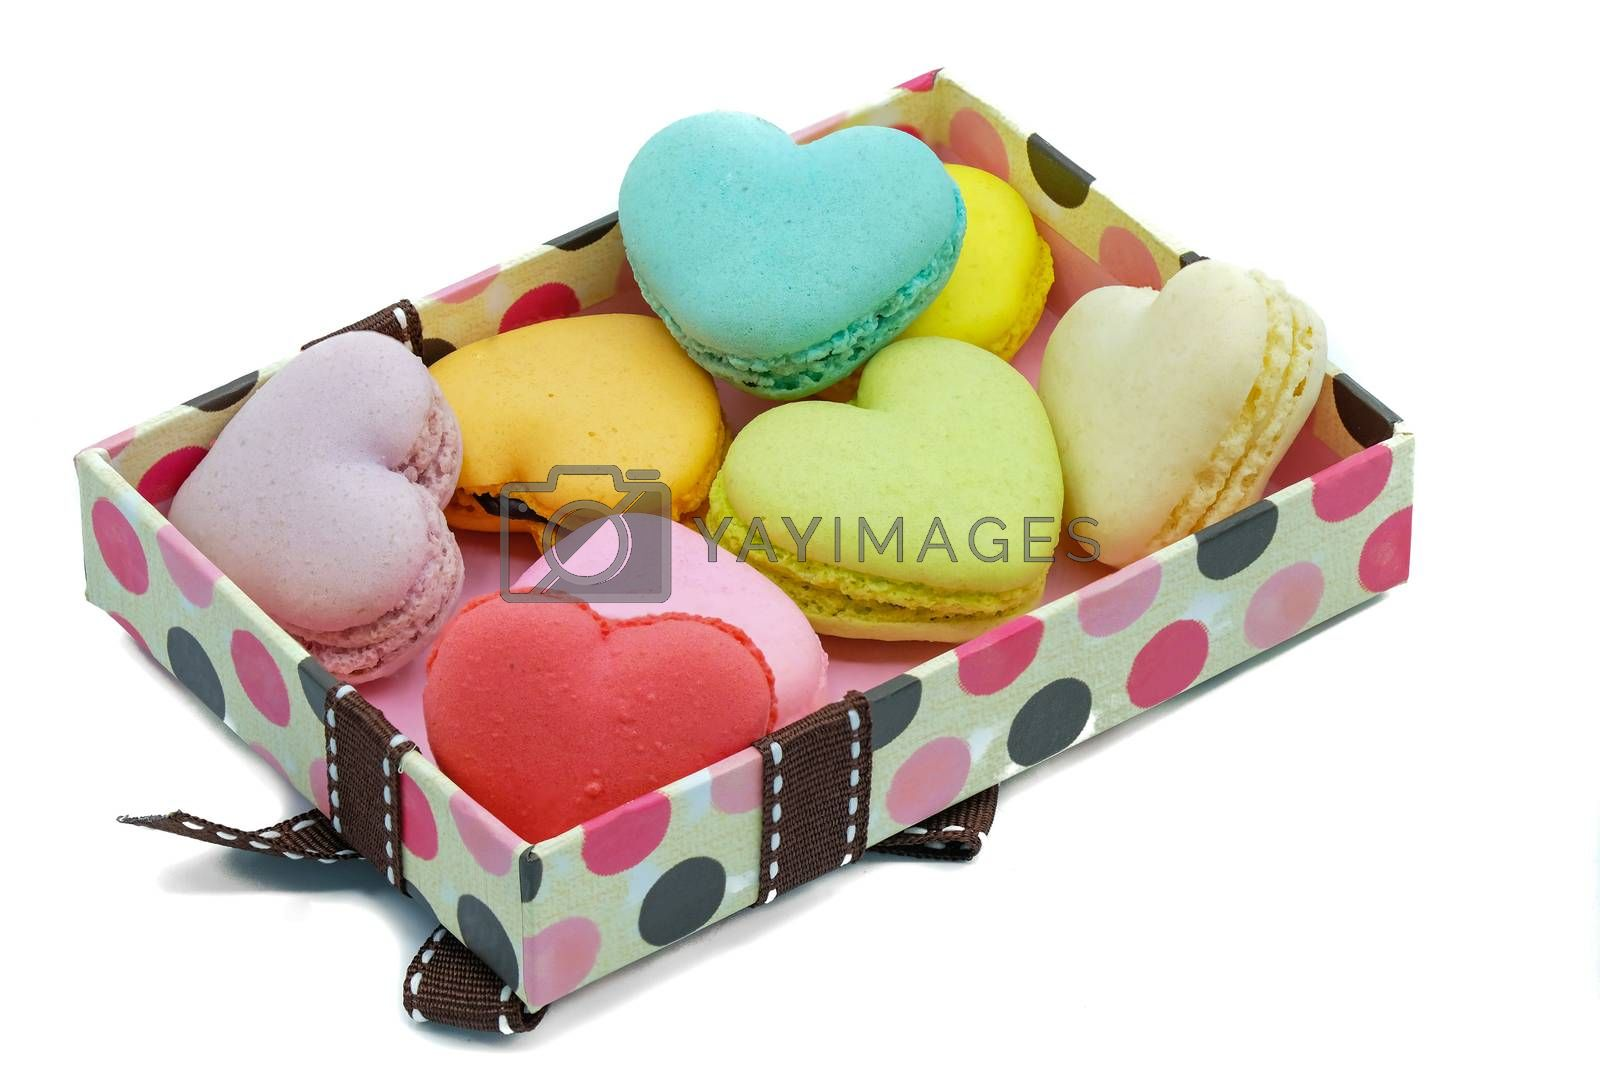 assortments of pastel color macaroons by Nawoot